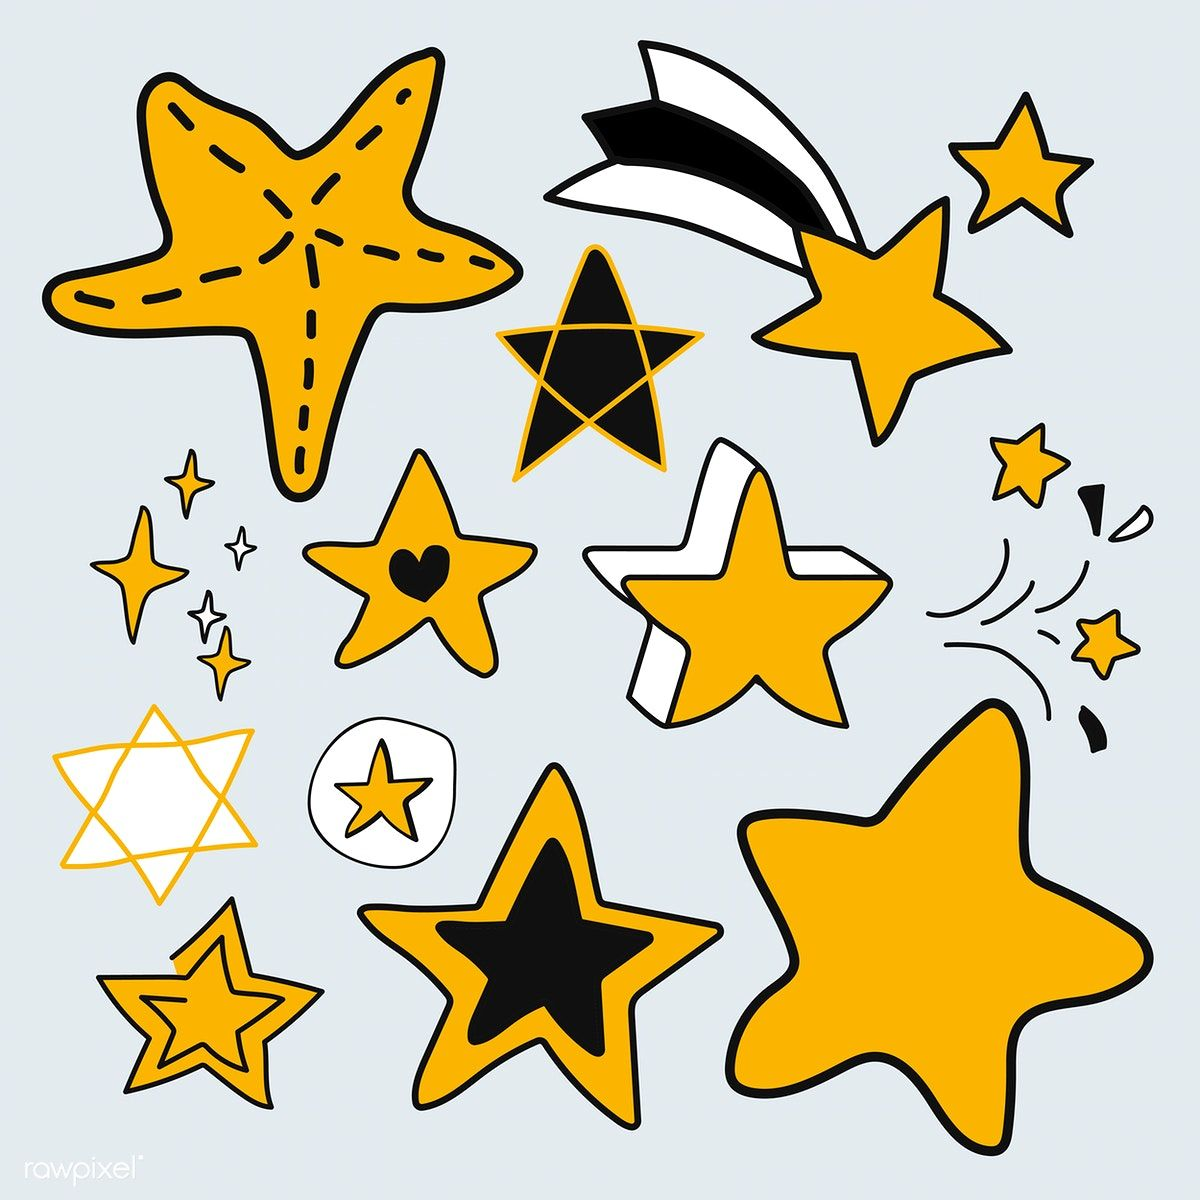 Hand Drawn Yellow Star Vectors Collection Free Image By Rawpixel Com Adj How To Draw Hands Free Hand Drawing Vector Free